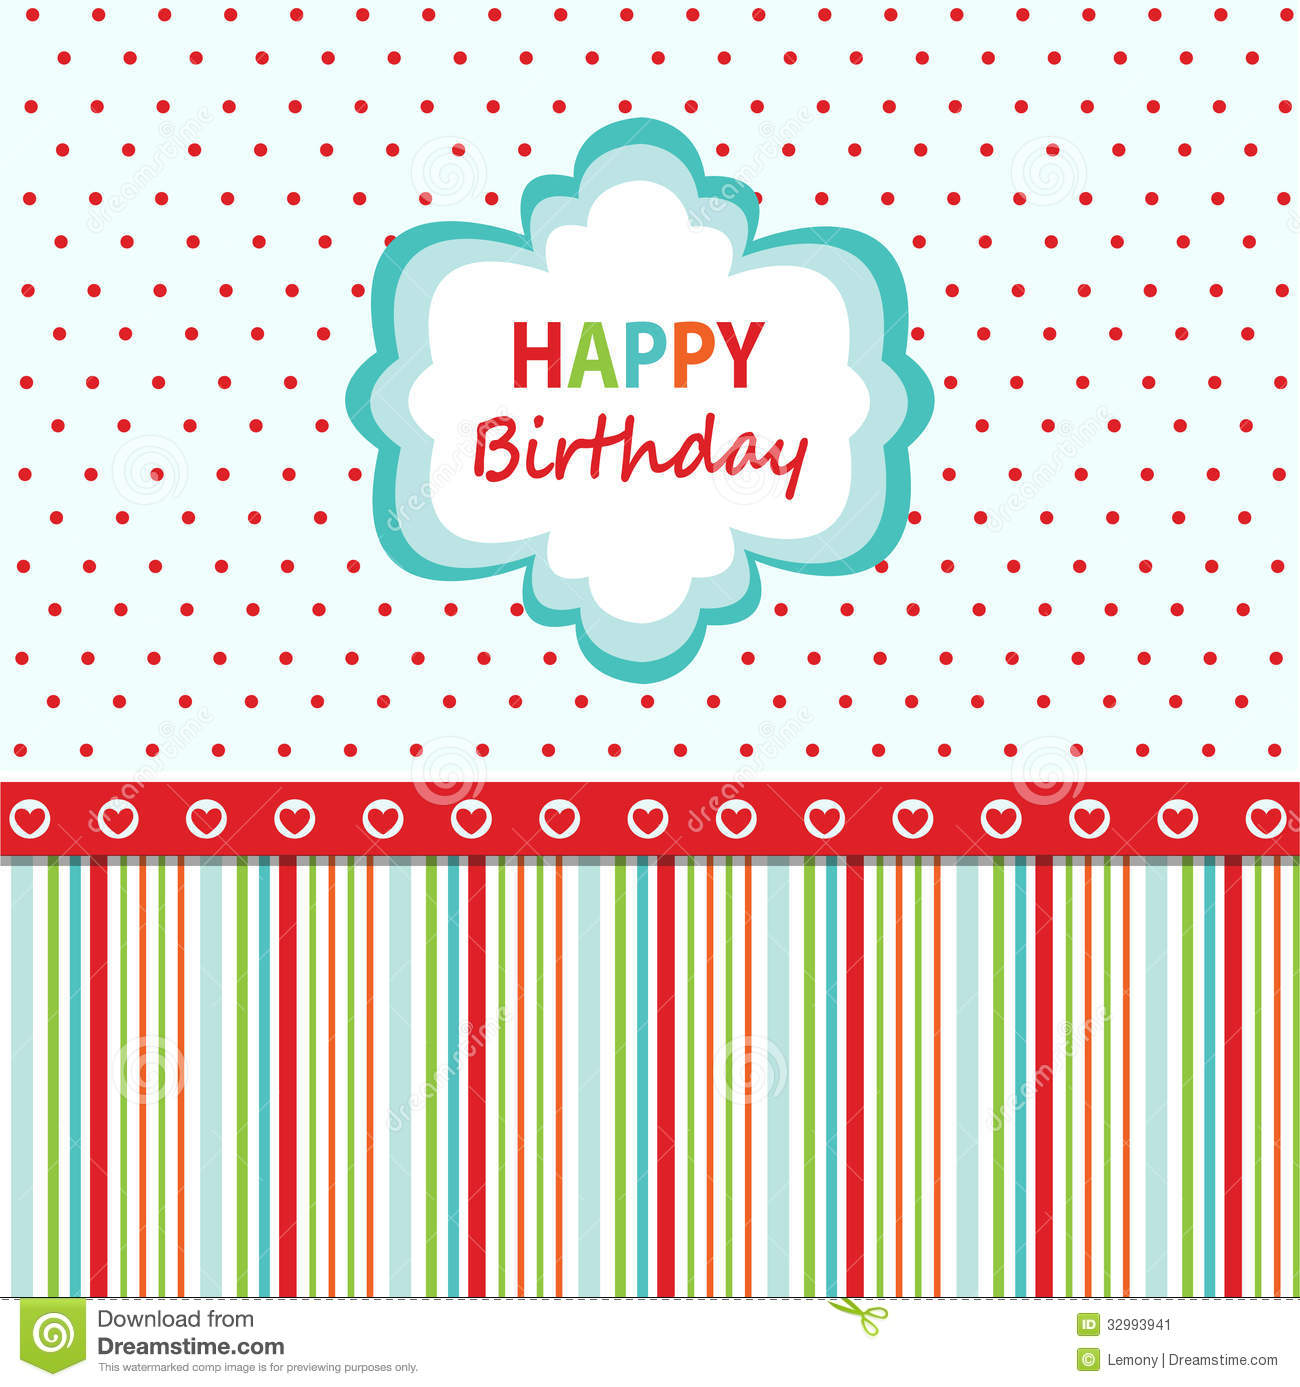 Happy birthday greeting card stock image image 32993941 - Happy birthday card wallpaper ...